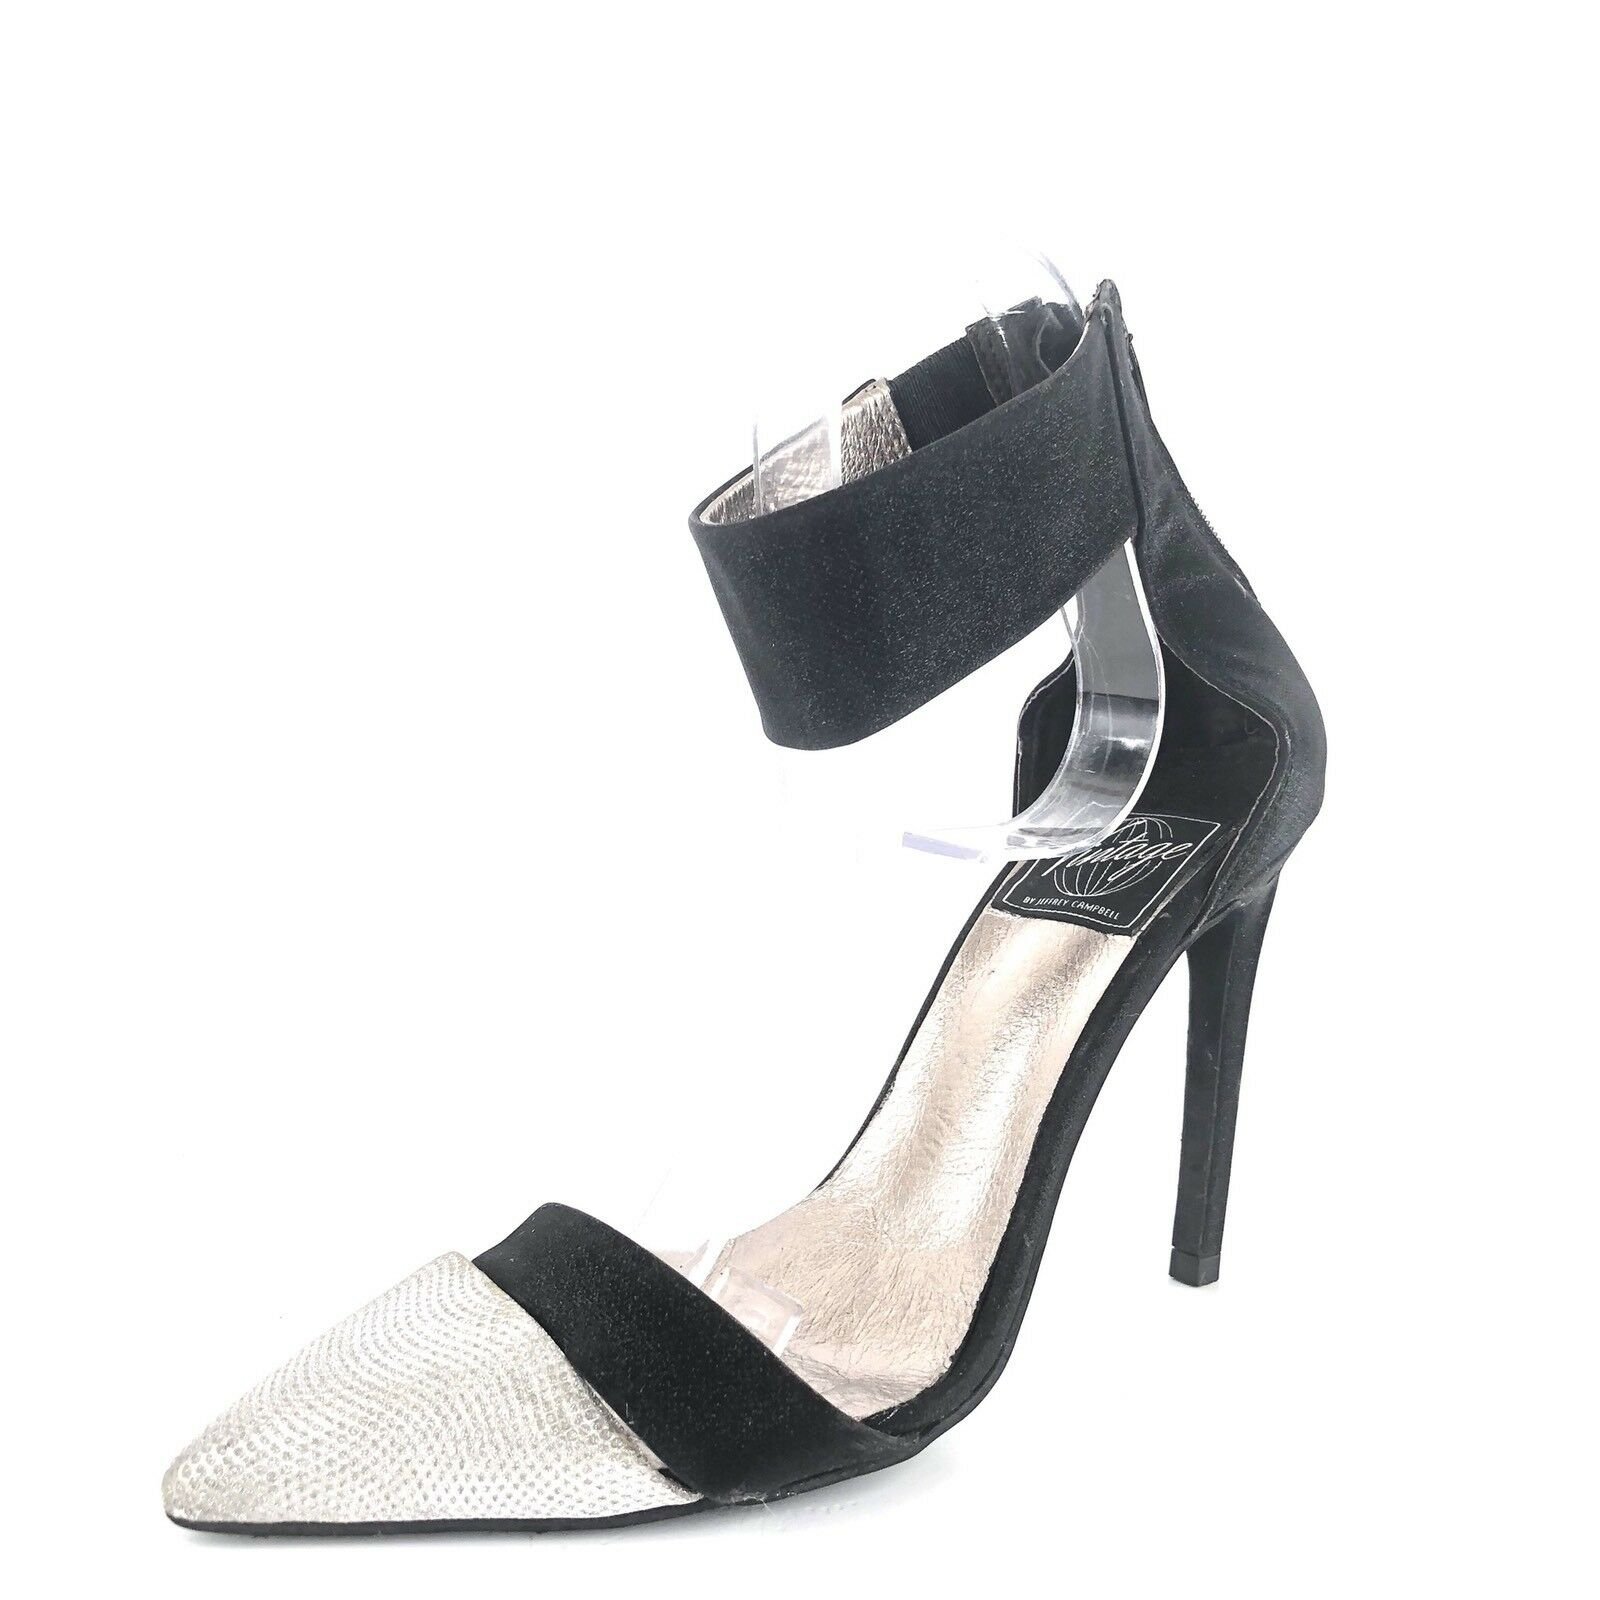 Jeffrey Campbell Adelyn Glitter Pointy Toe Ankle Strap Heel Pumps Size 6 M